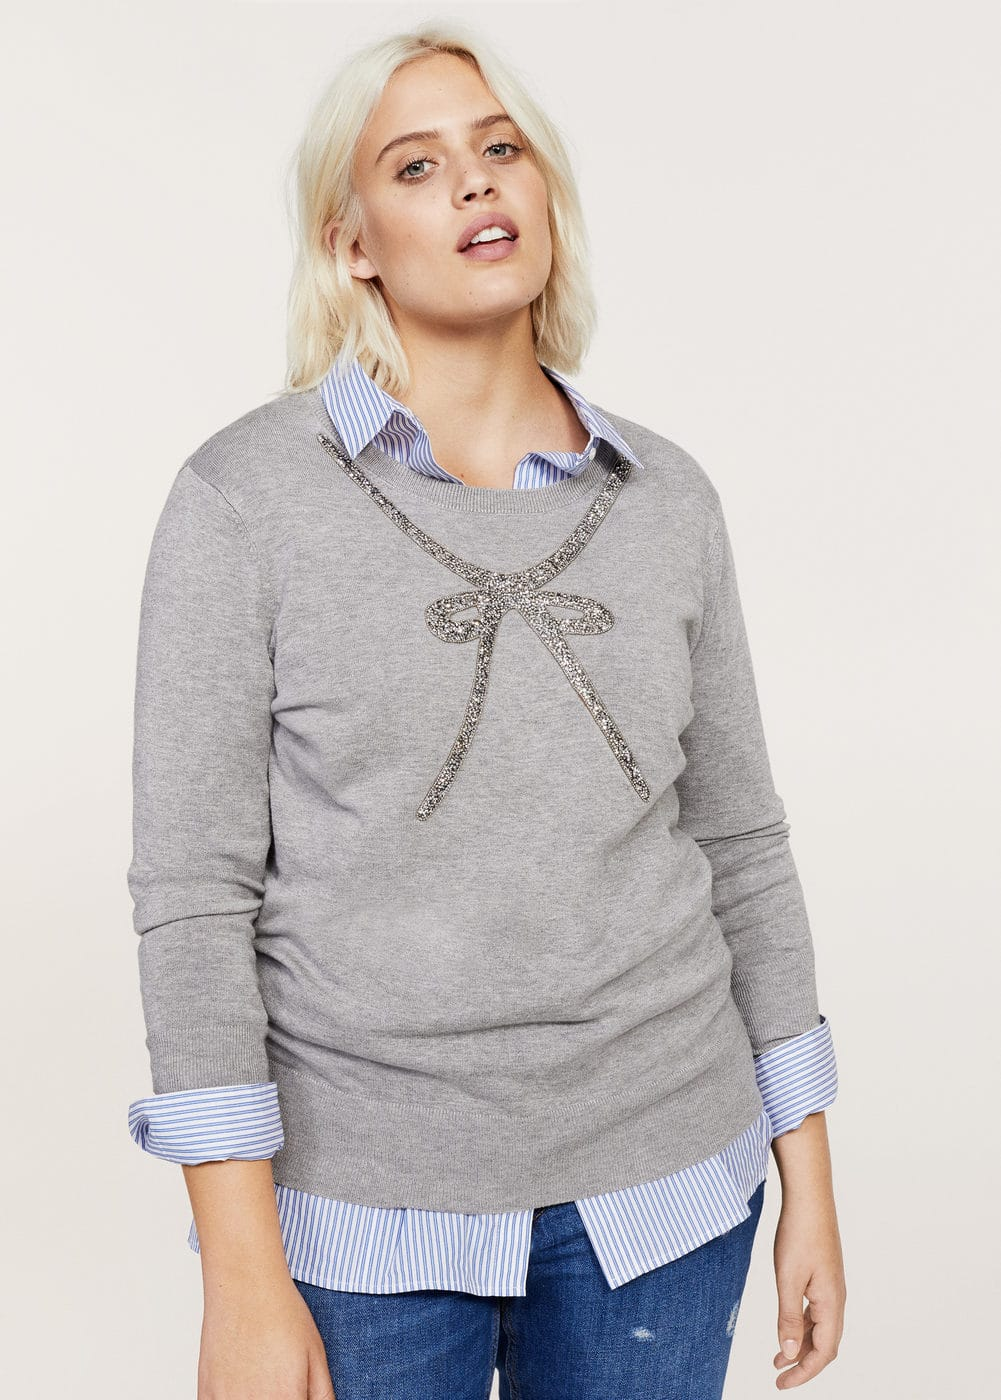 Metal appliqué sweater | VIOLETA BY MANGO